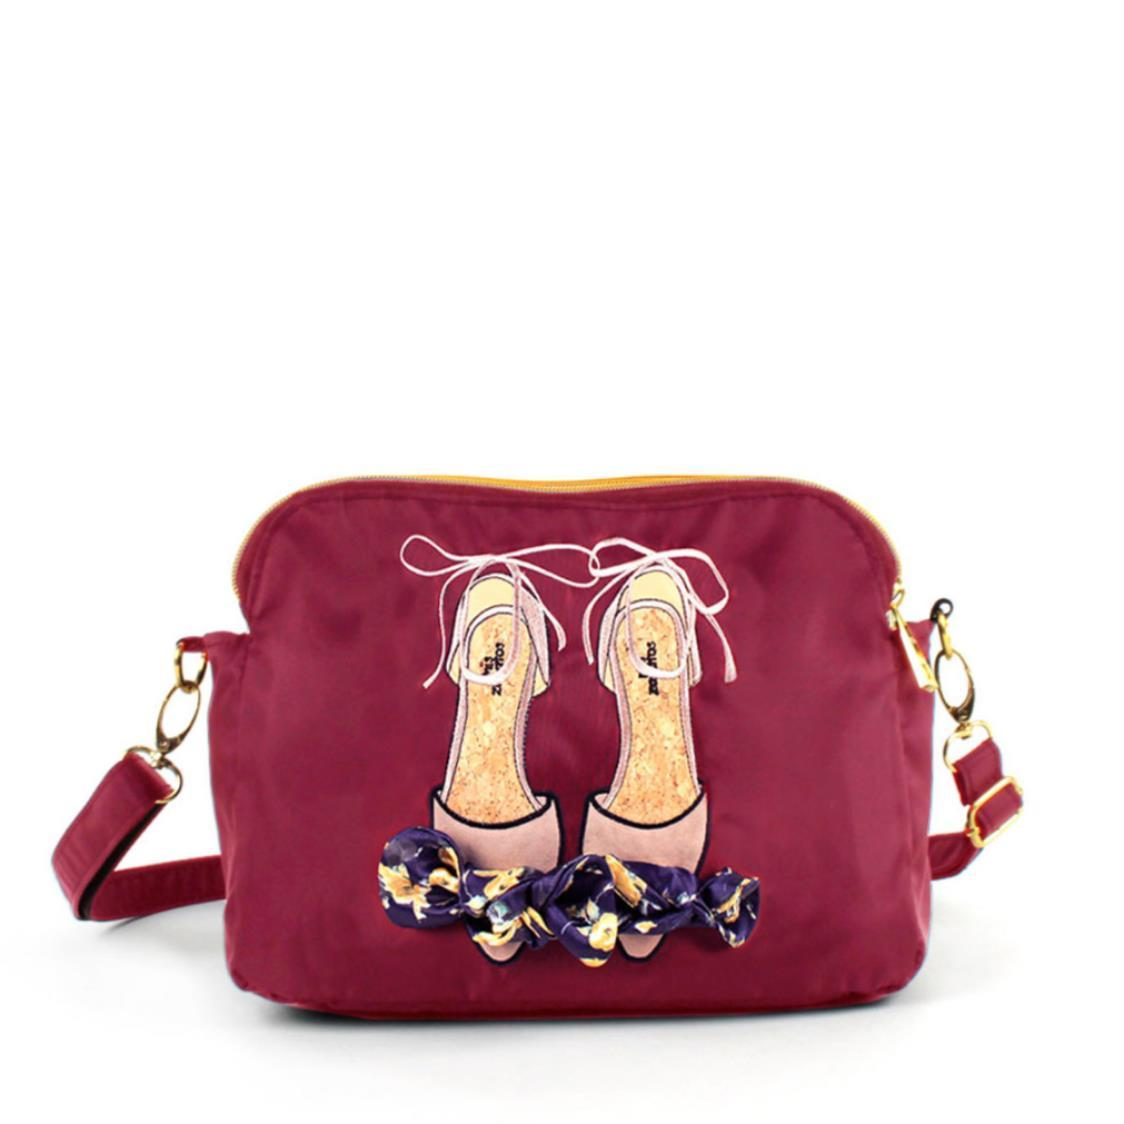 2-Way Use Ladies Shoes with Floral Ribbon Slingbag Wine